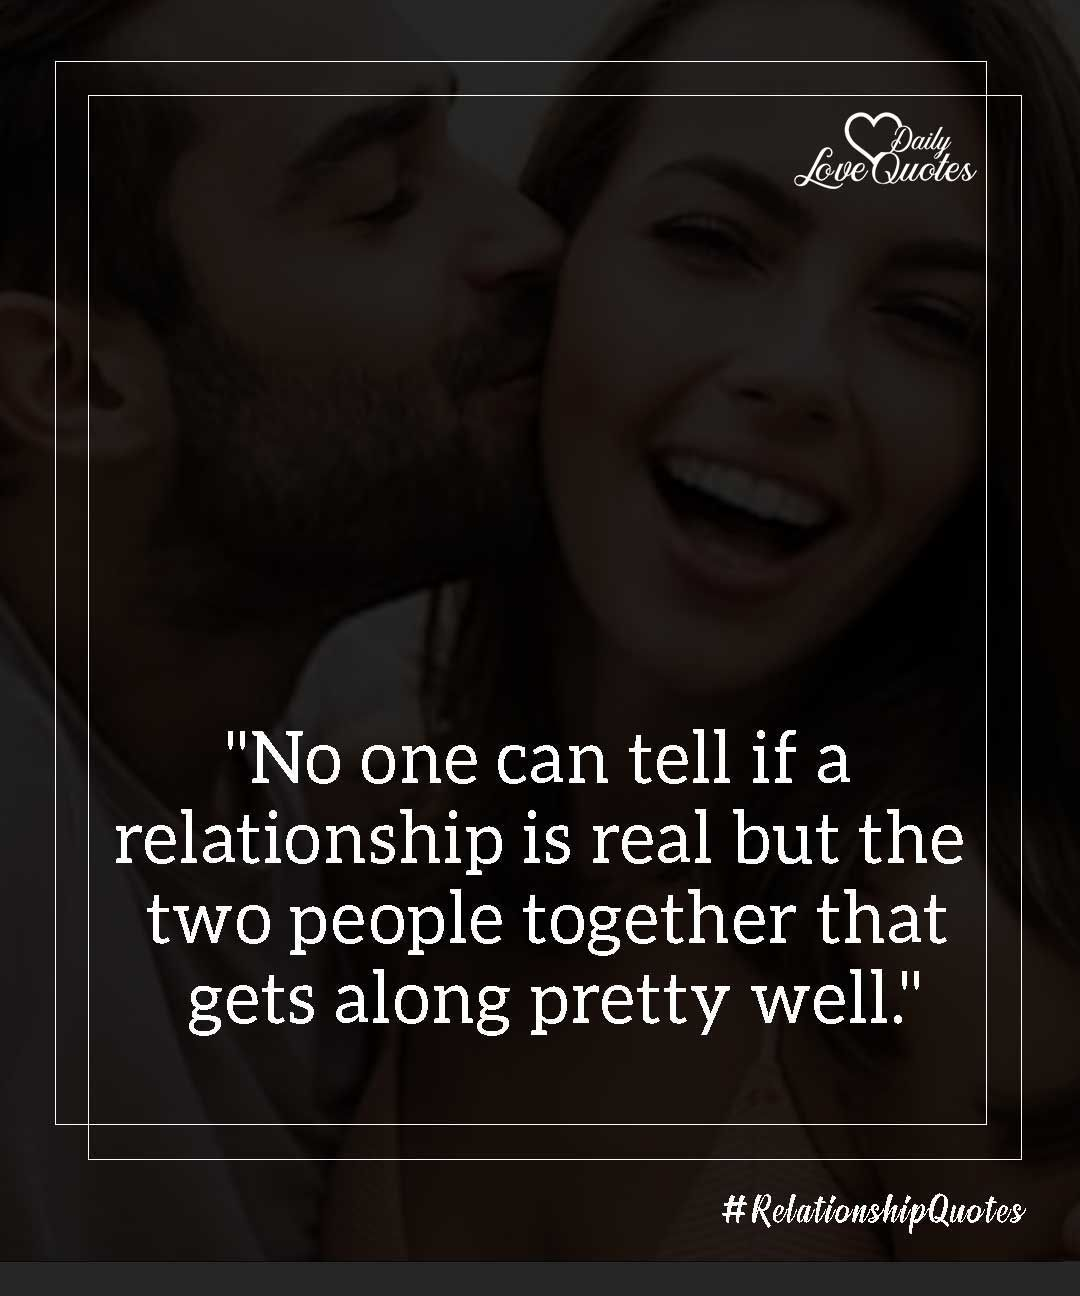 These are deep, real life relationship quotes for him or her straight from the heart. #relationshipquotes #quotes #bestlovequotes #couplequotes #lovequotes #iloveyouquotes #lovesayings